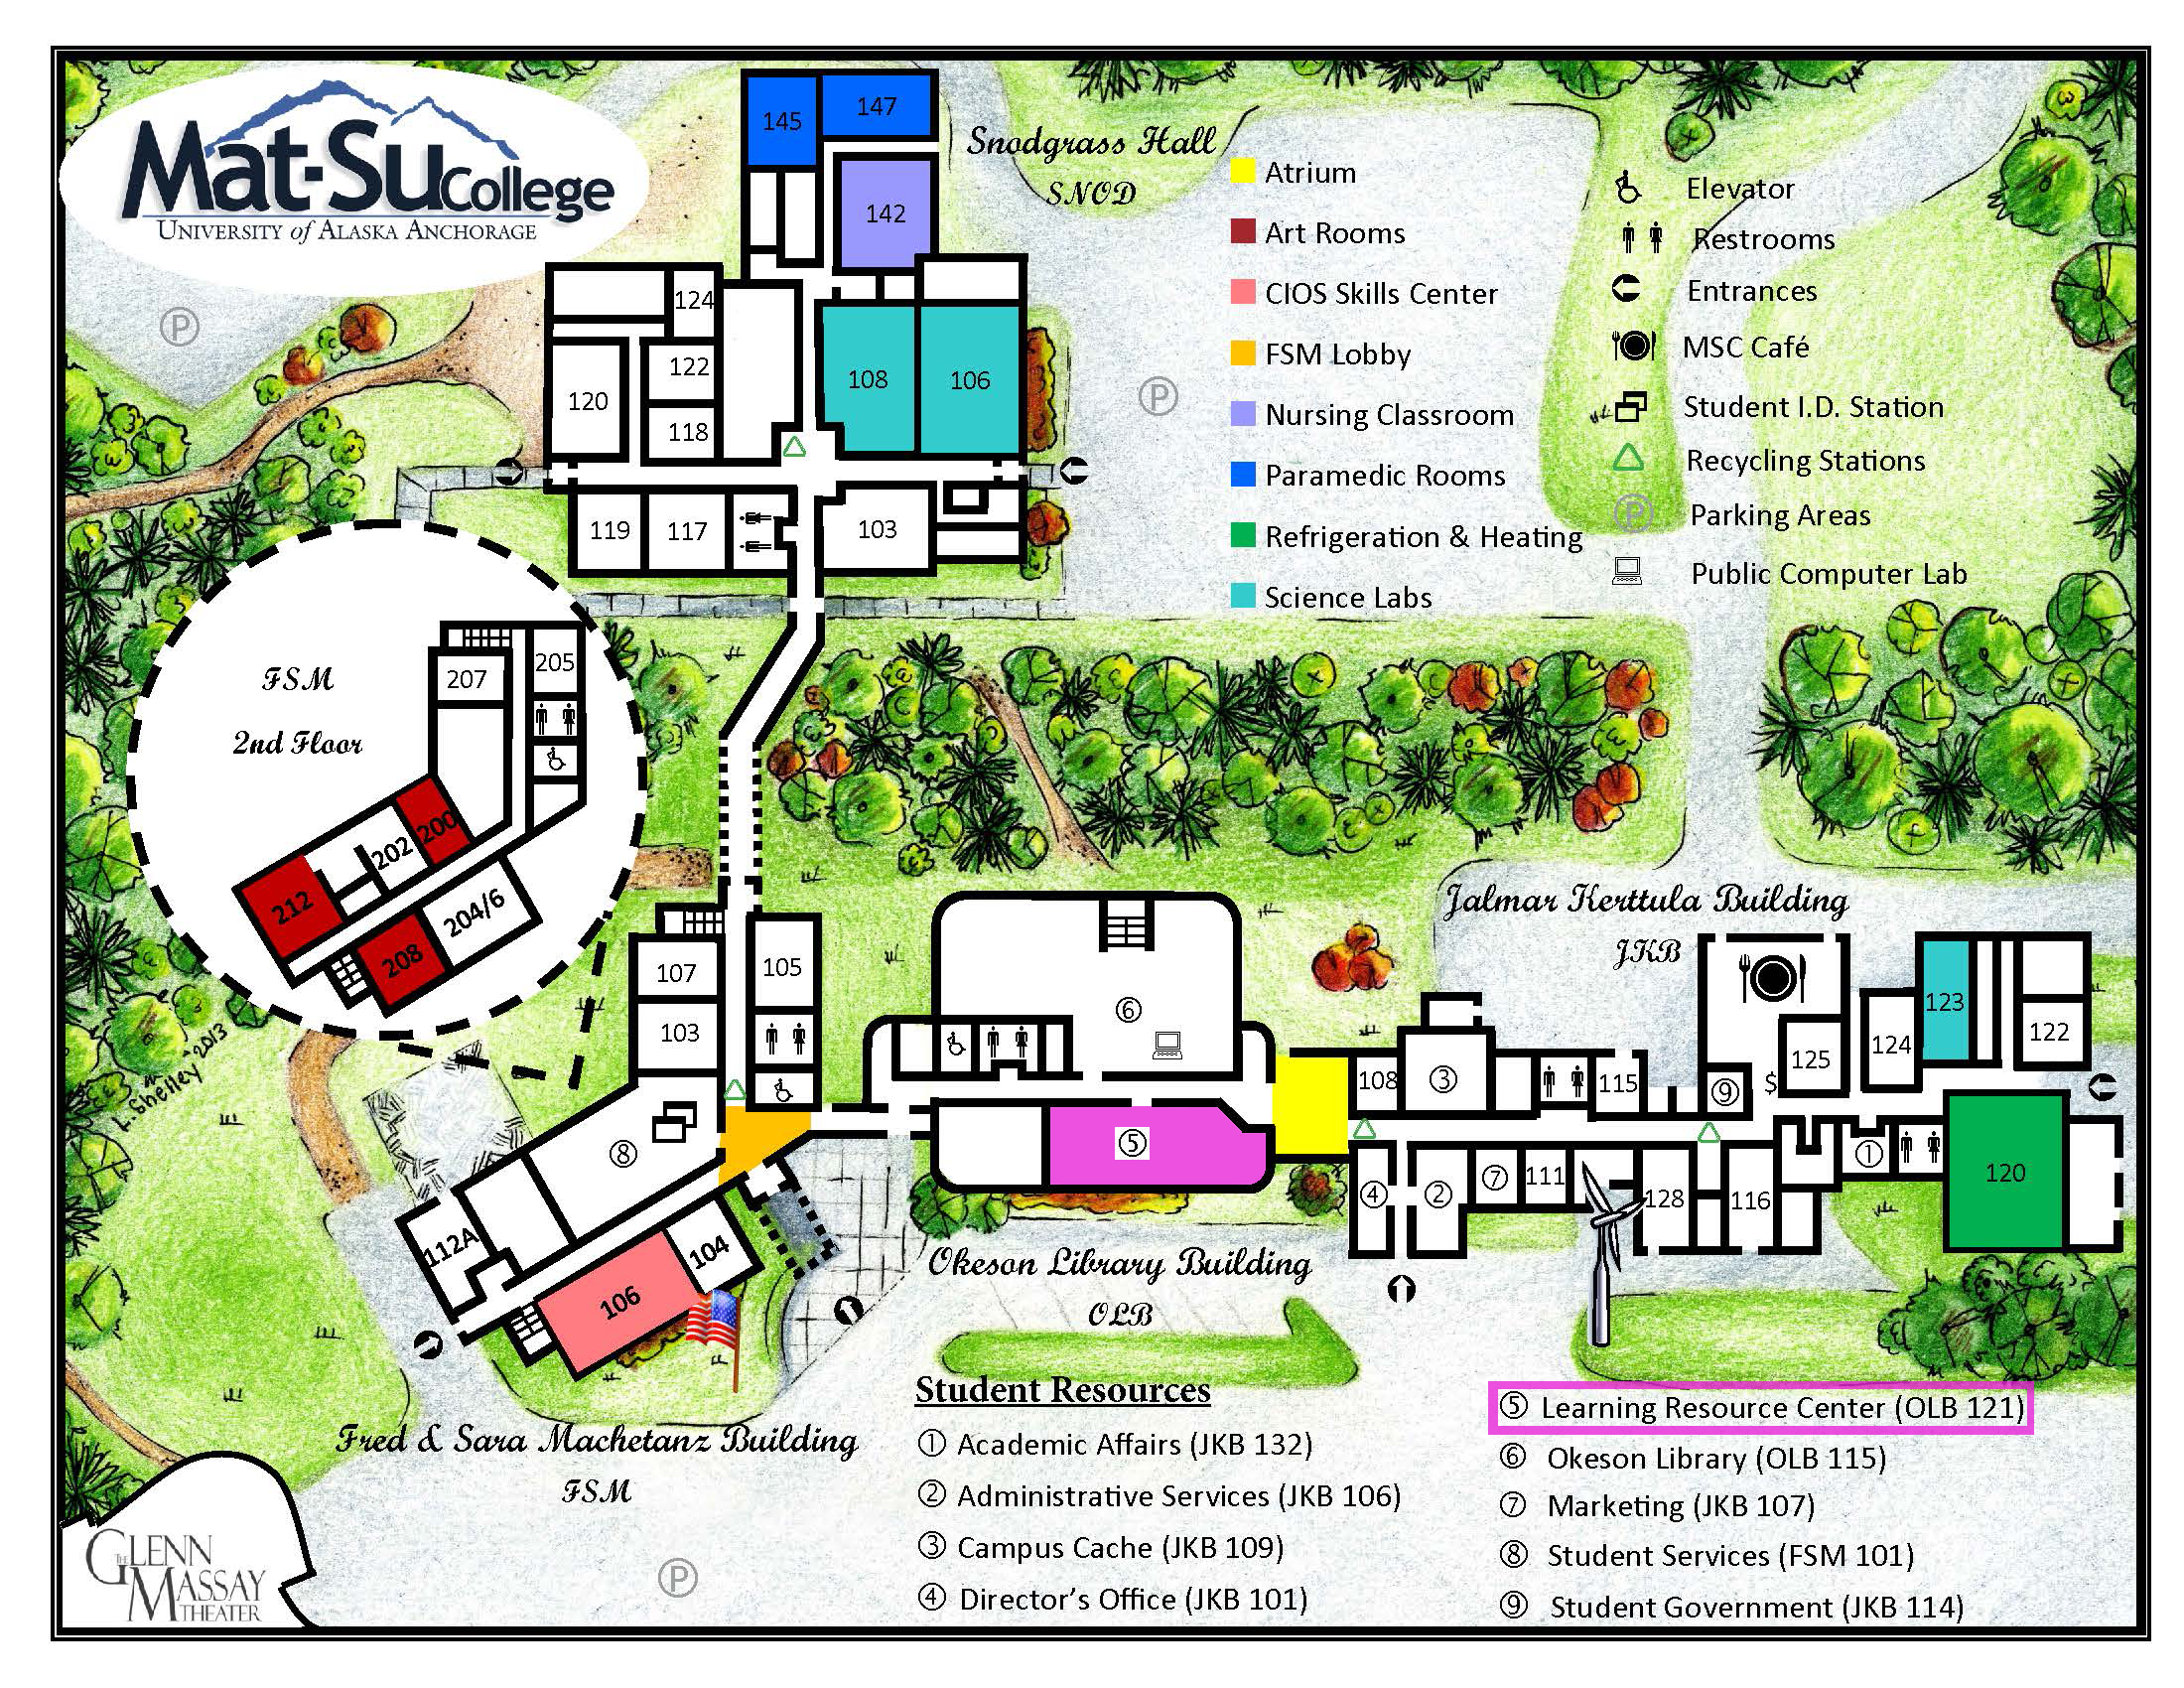 Map of Mat-Su College with Learning Resource Center highlighted